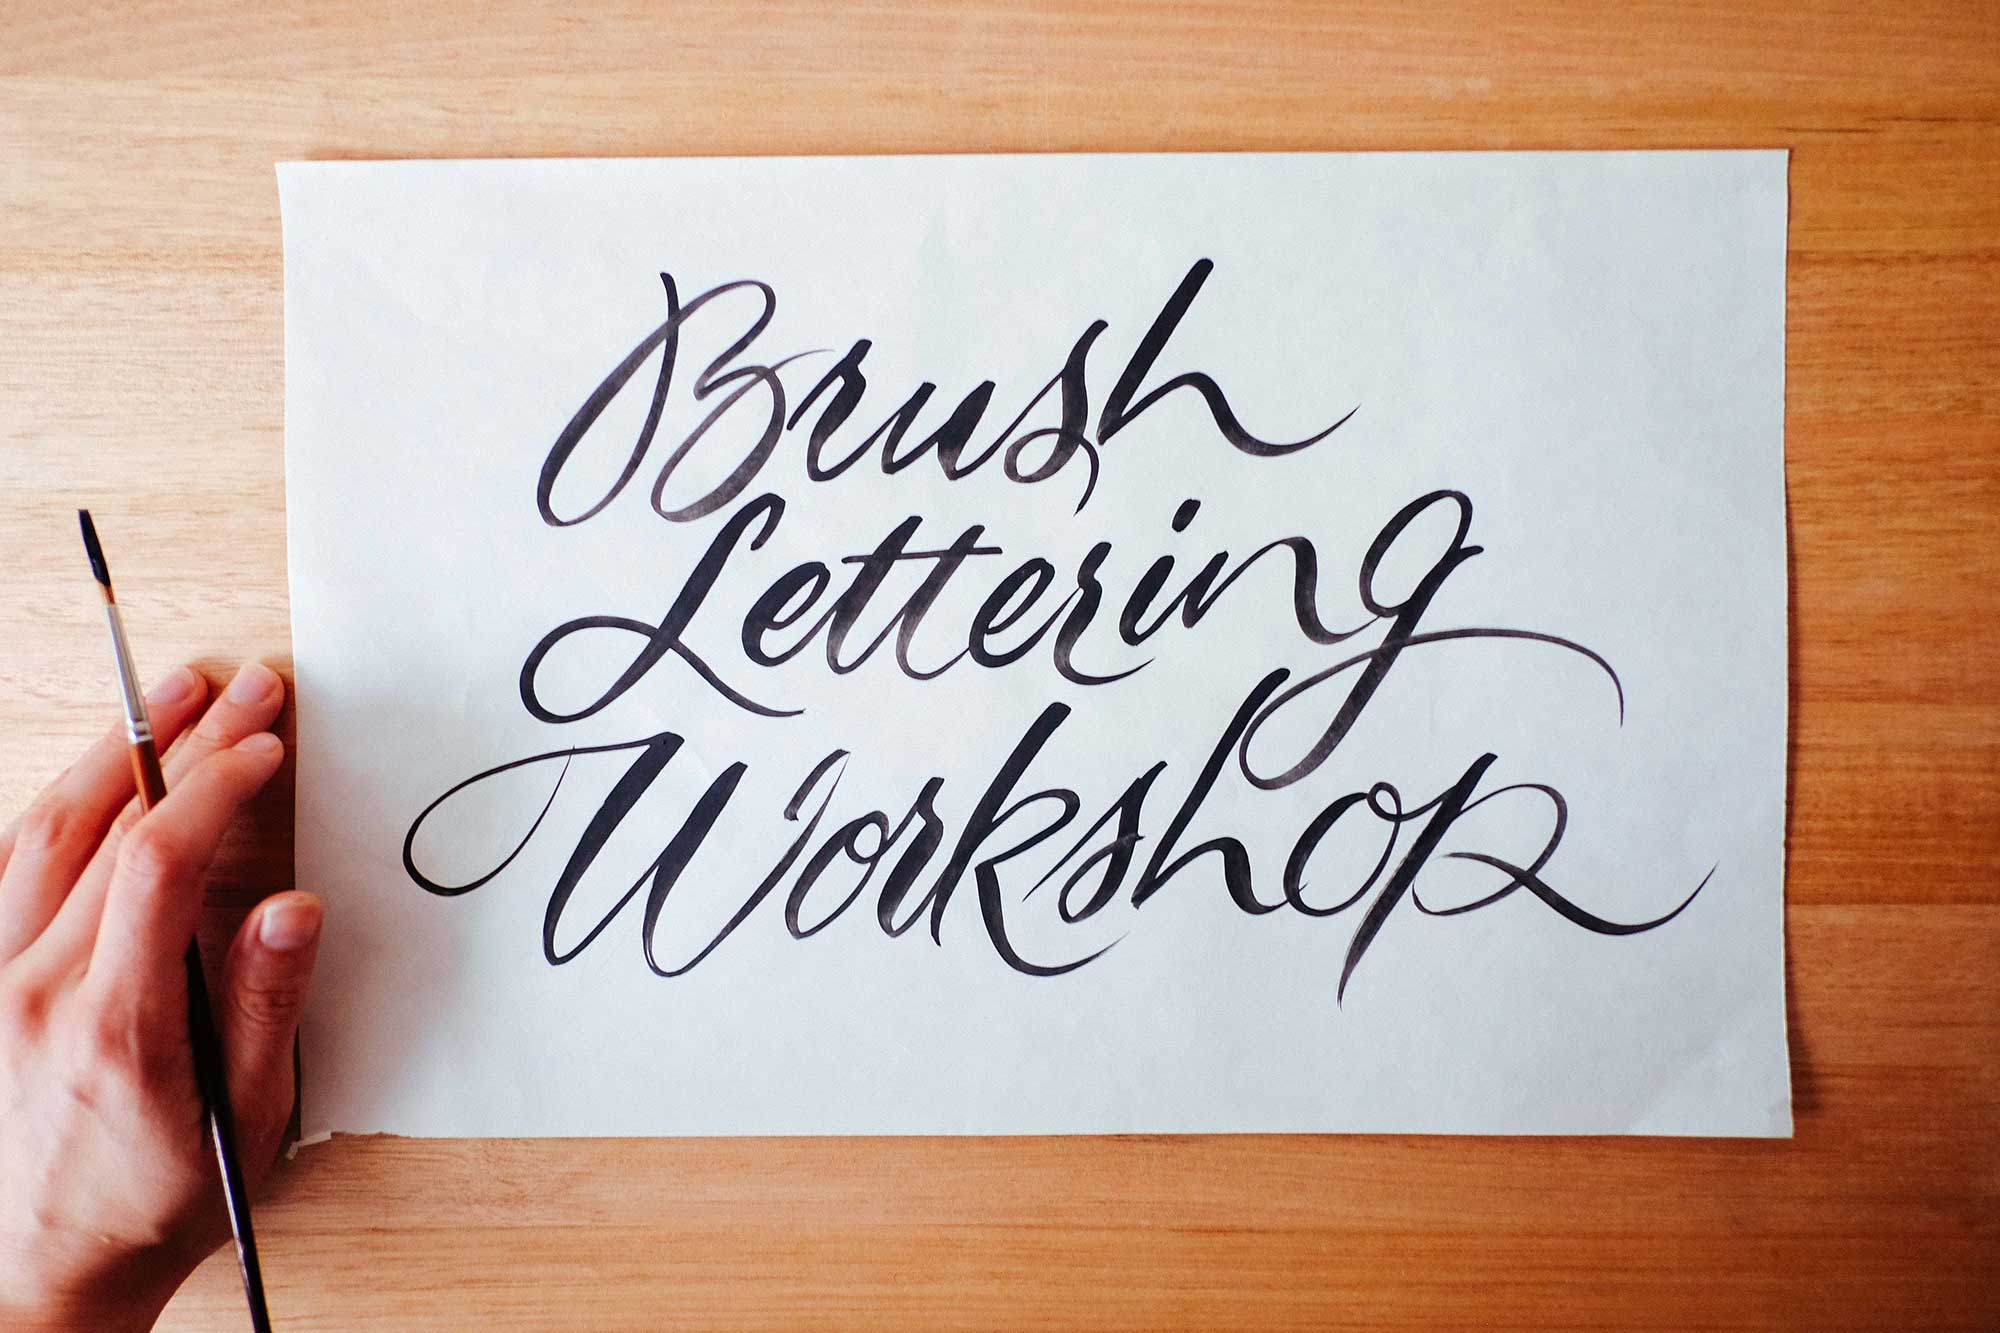 Brush Lettering Workshop, Melbourne 1st July 2017